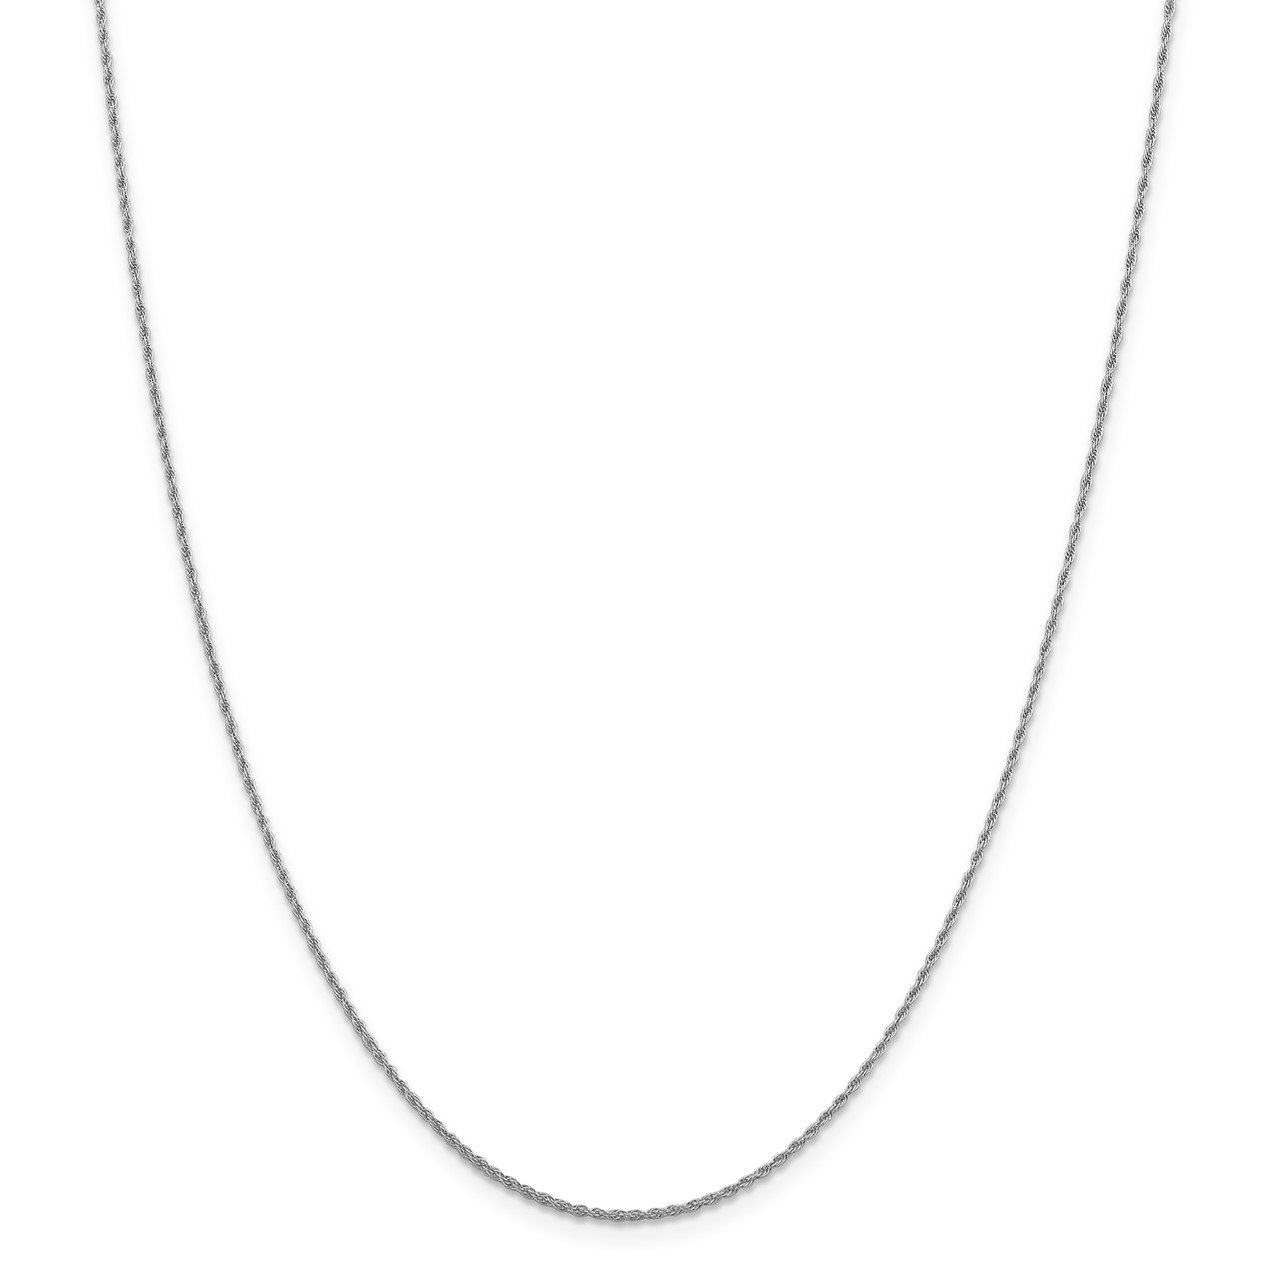 Leslie's 14K White Gold 1.3mm Loose Rope Chain